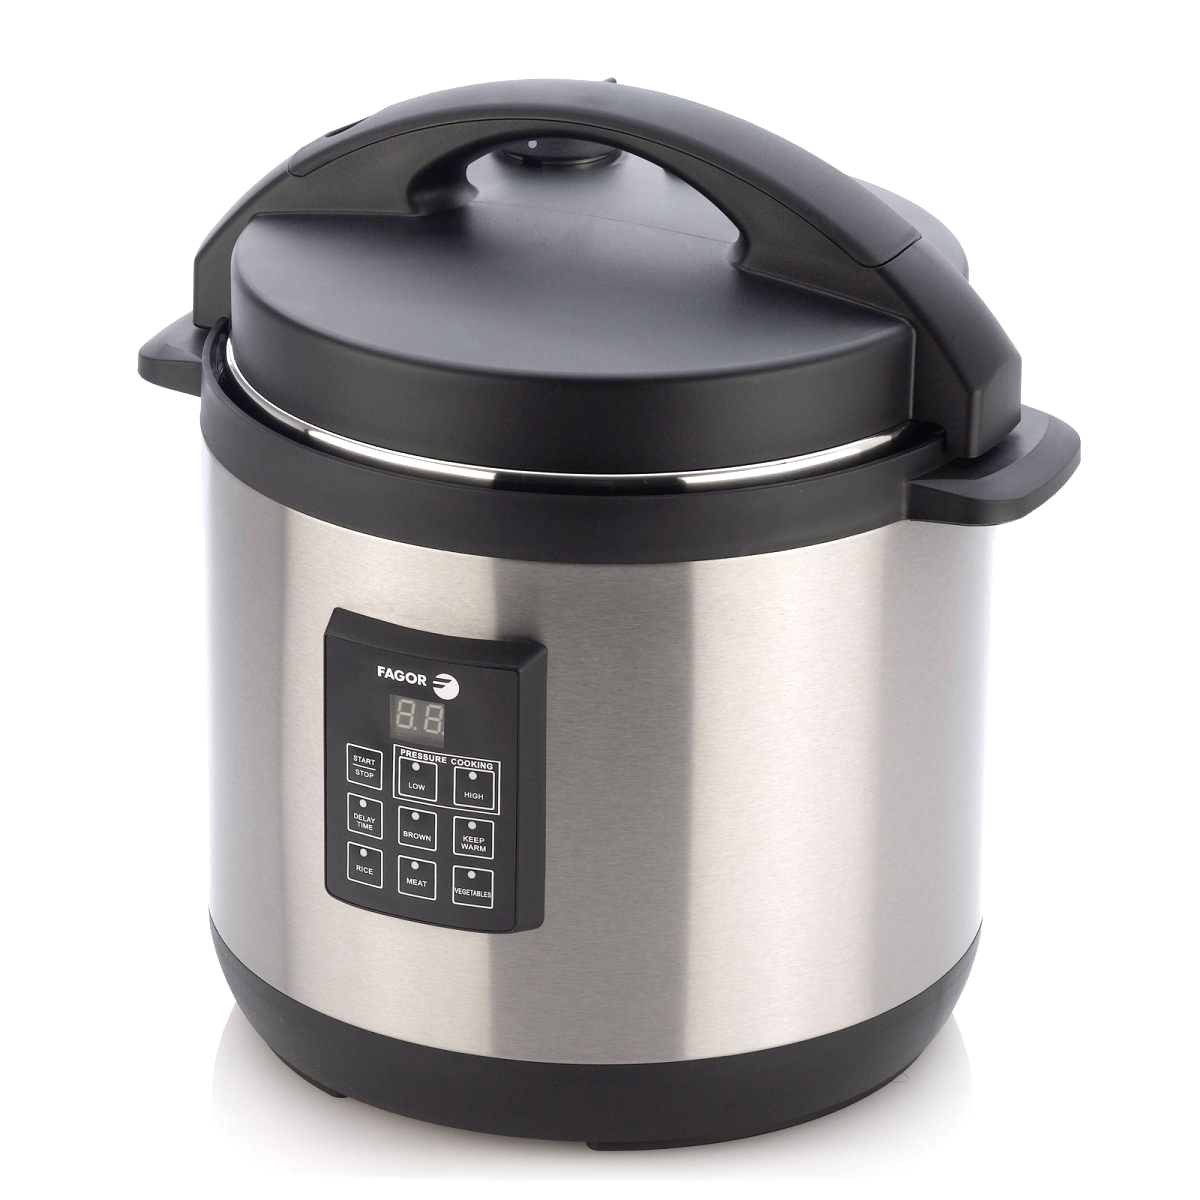 Fagor Electric Stainless Steel Pressure Cooker Plus, 6 Quart